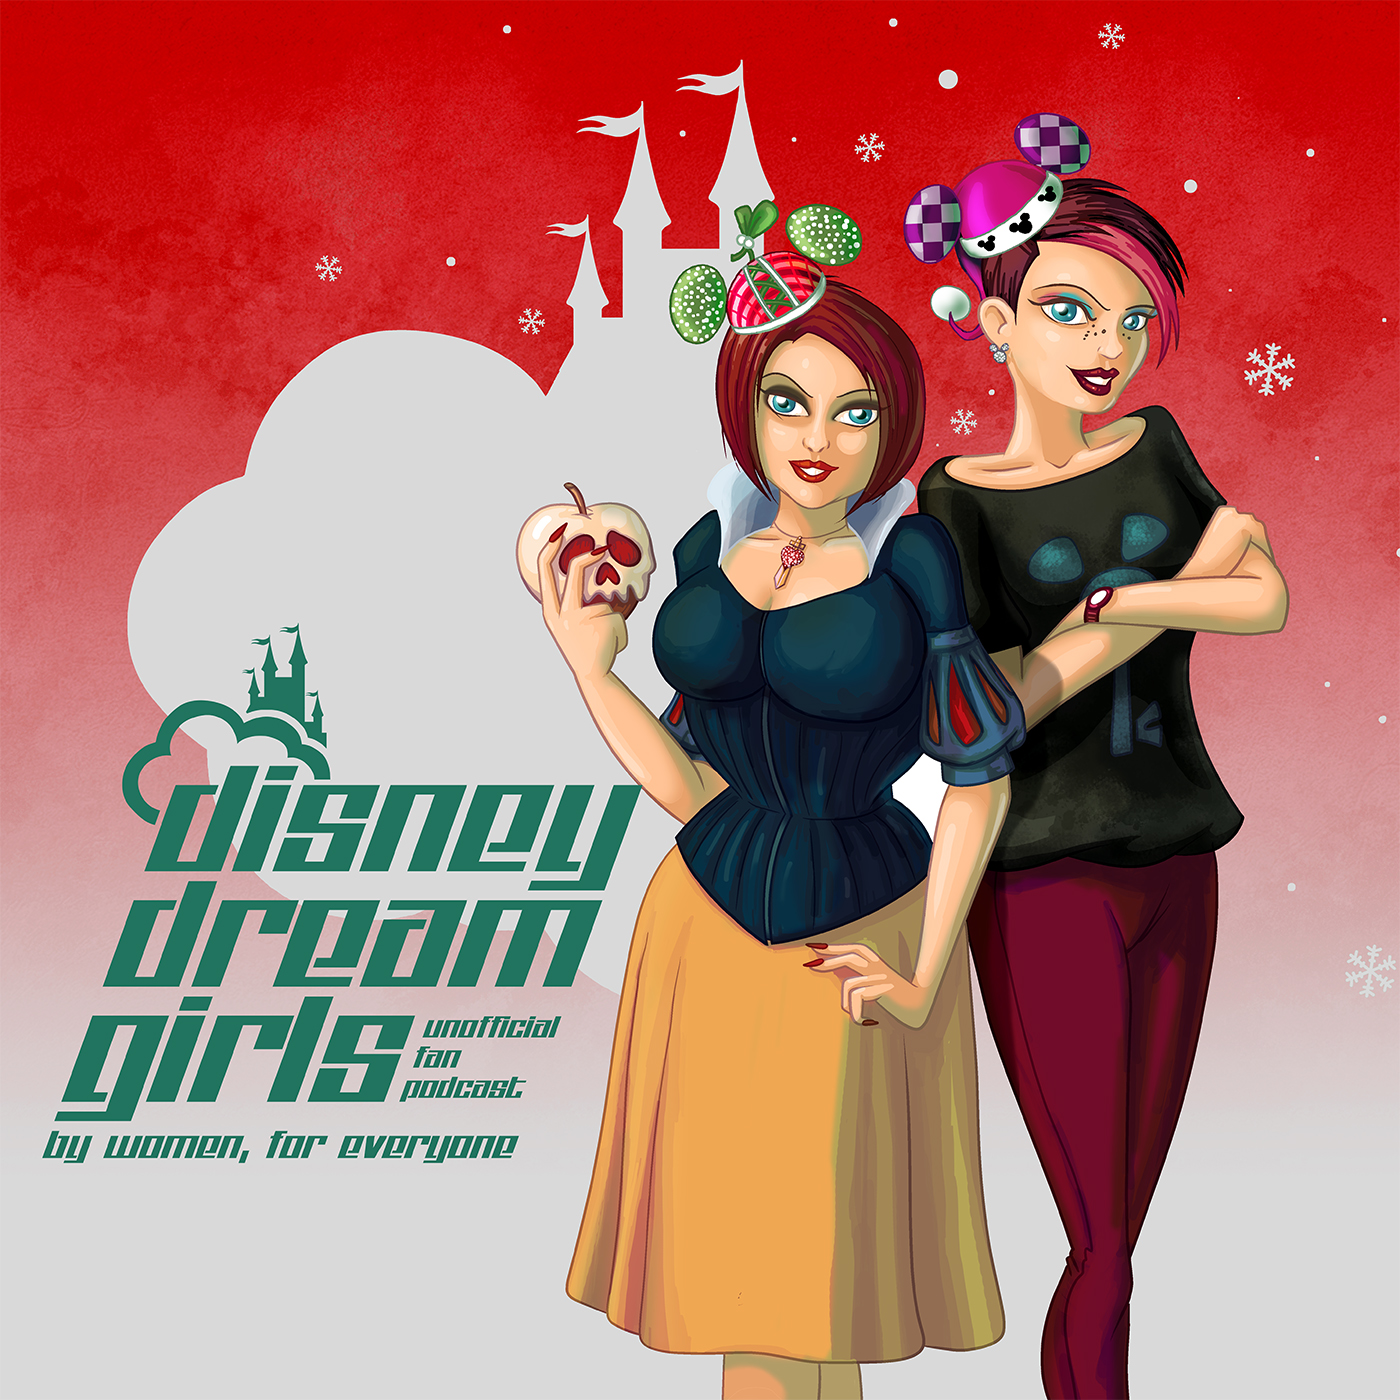 Disney Dream Girls 081 - Minxmas with Tokyo Disney Resort Now Podcast